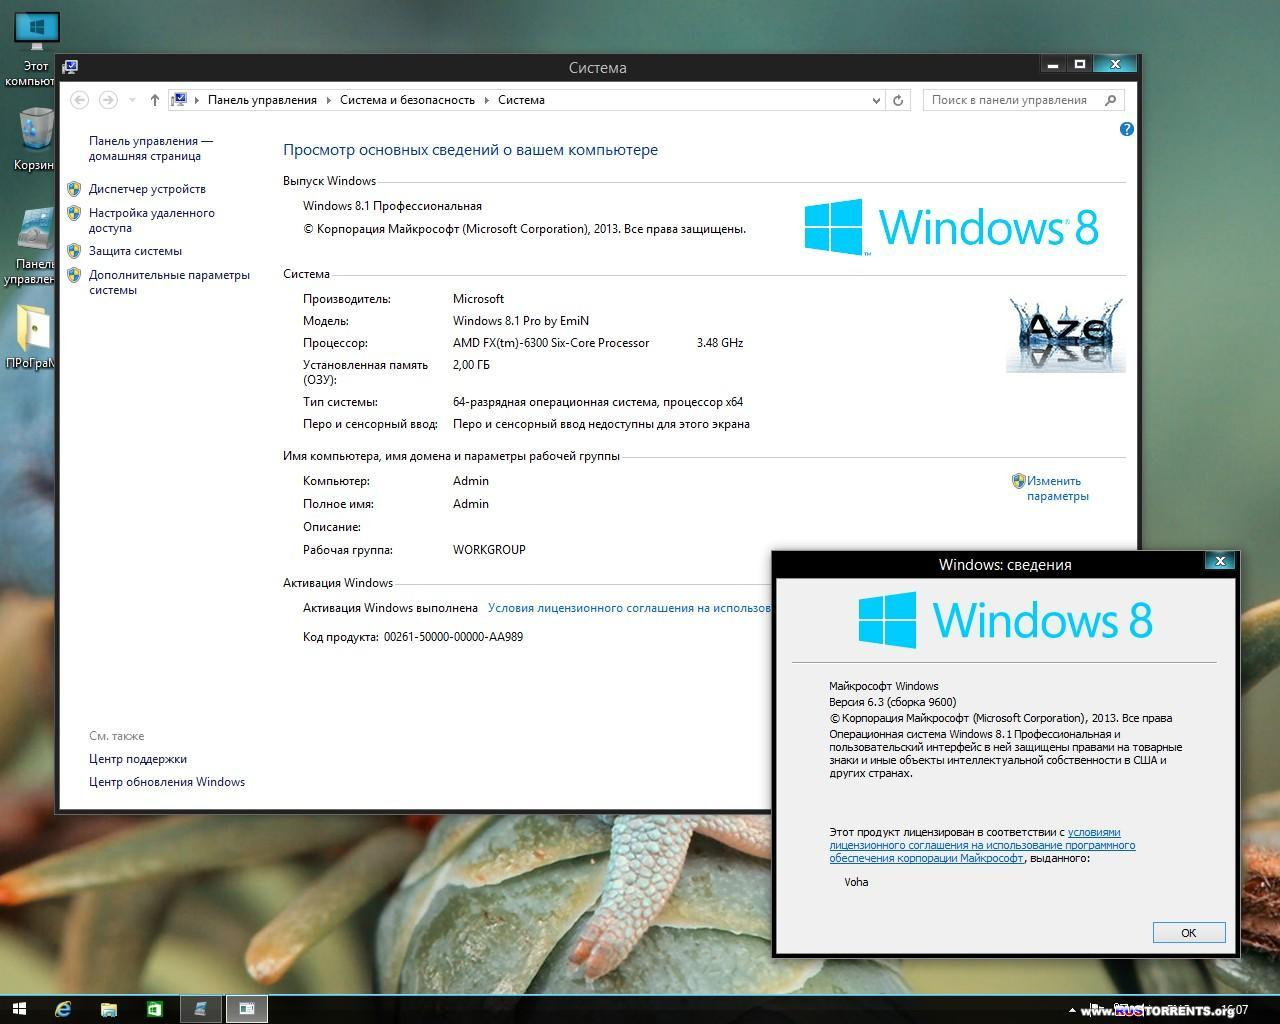 Windows 8.1 Professional VL with update x64 by EmiN 04.09.2014 RUS